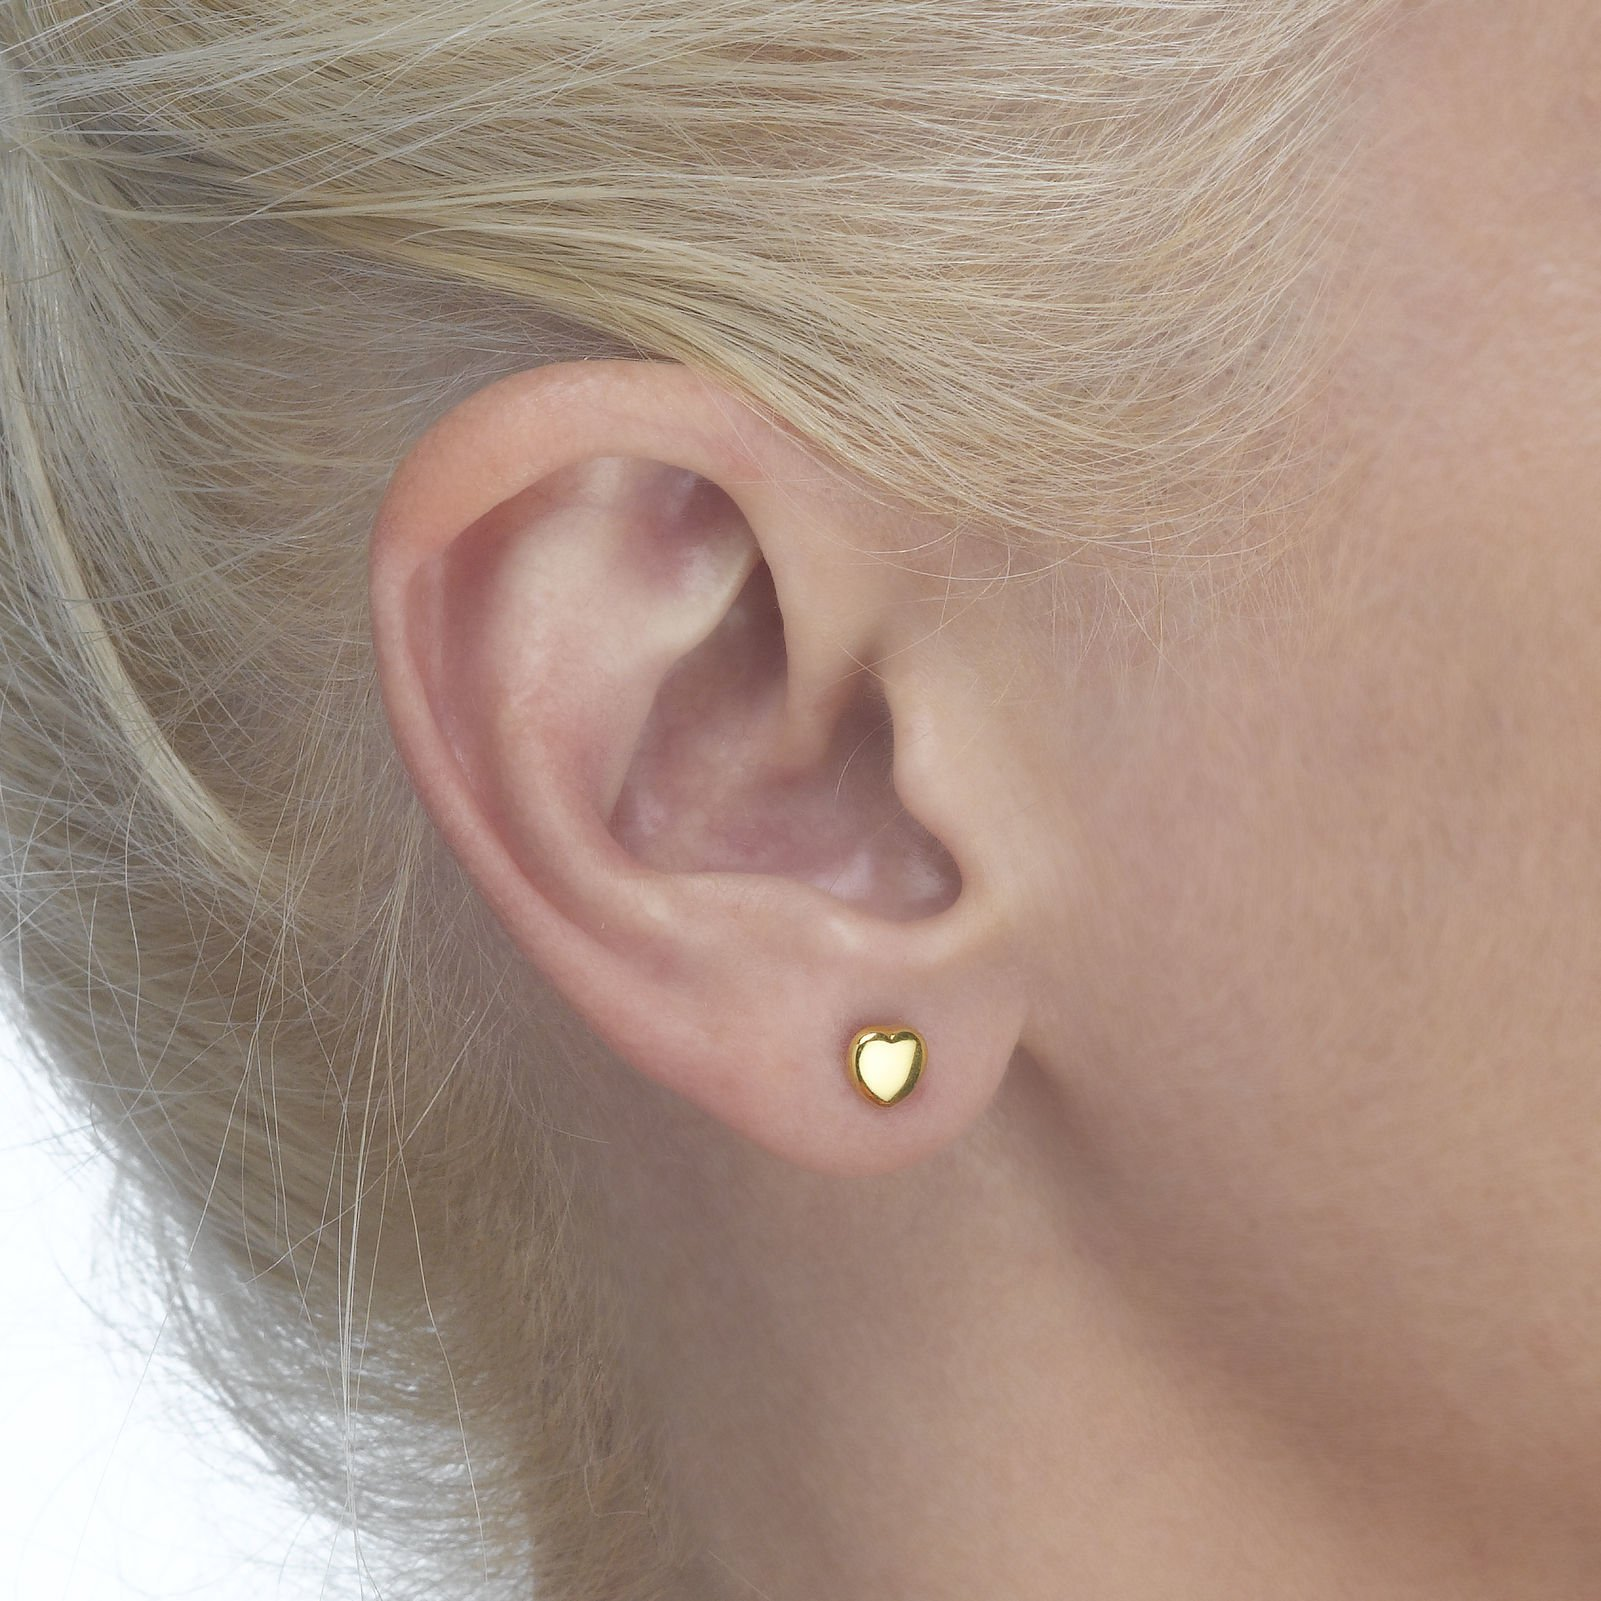 14K Fine Yellow Gold Heart Screw Back Stud Earrings for Girls Kids Children Gift by youme Gold Jewelry (Image #2)